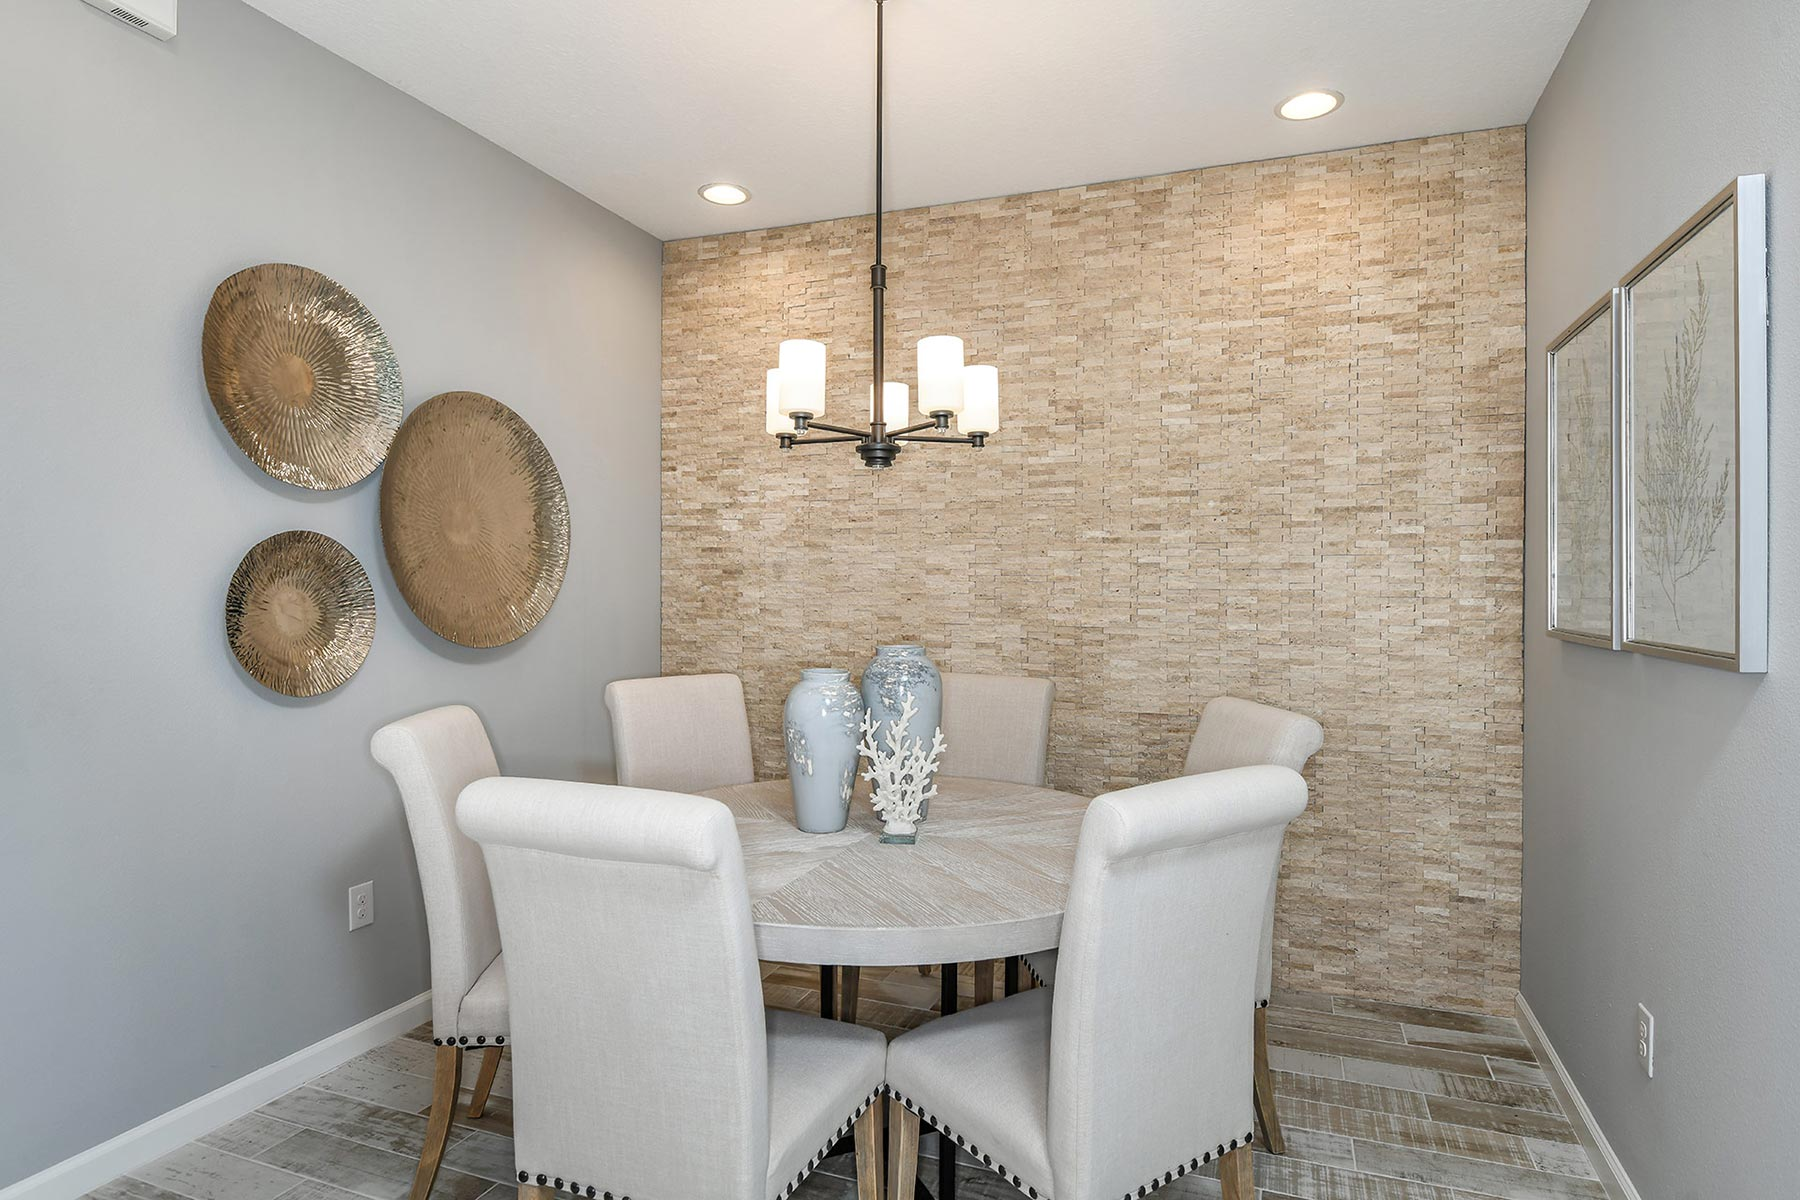 Coquina II Plan Dining at Wellen Park - Renaissance in Venice Florida by Mattamy Homes